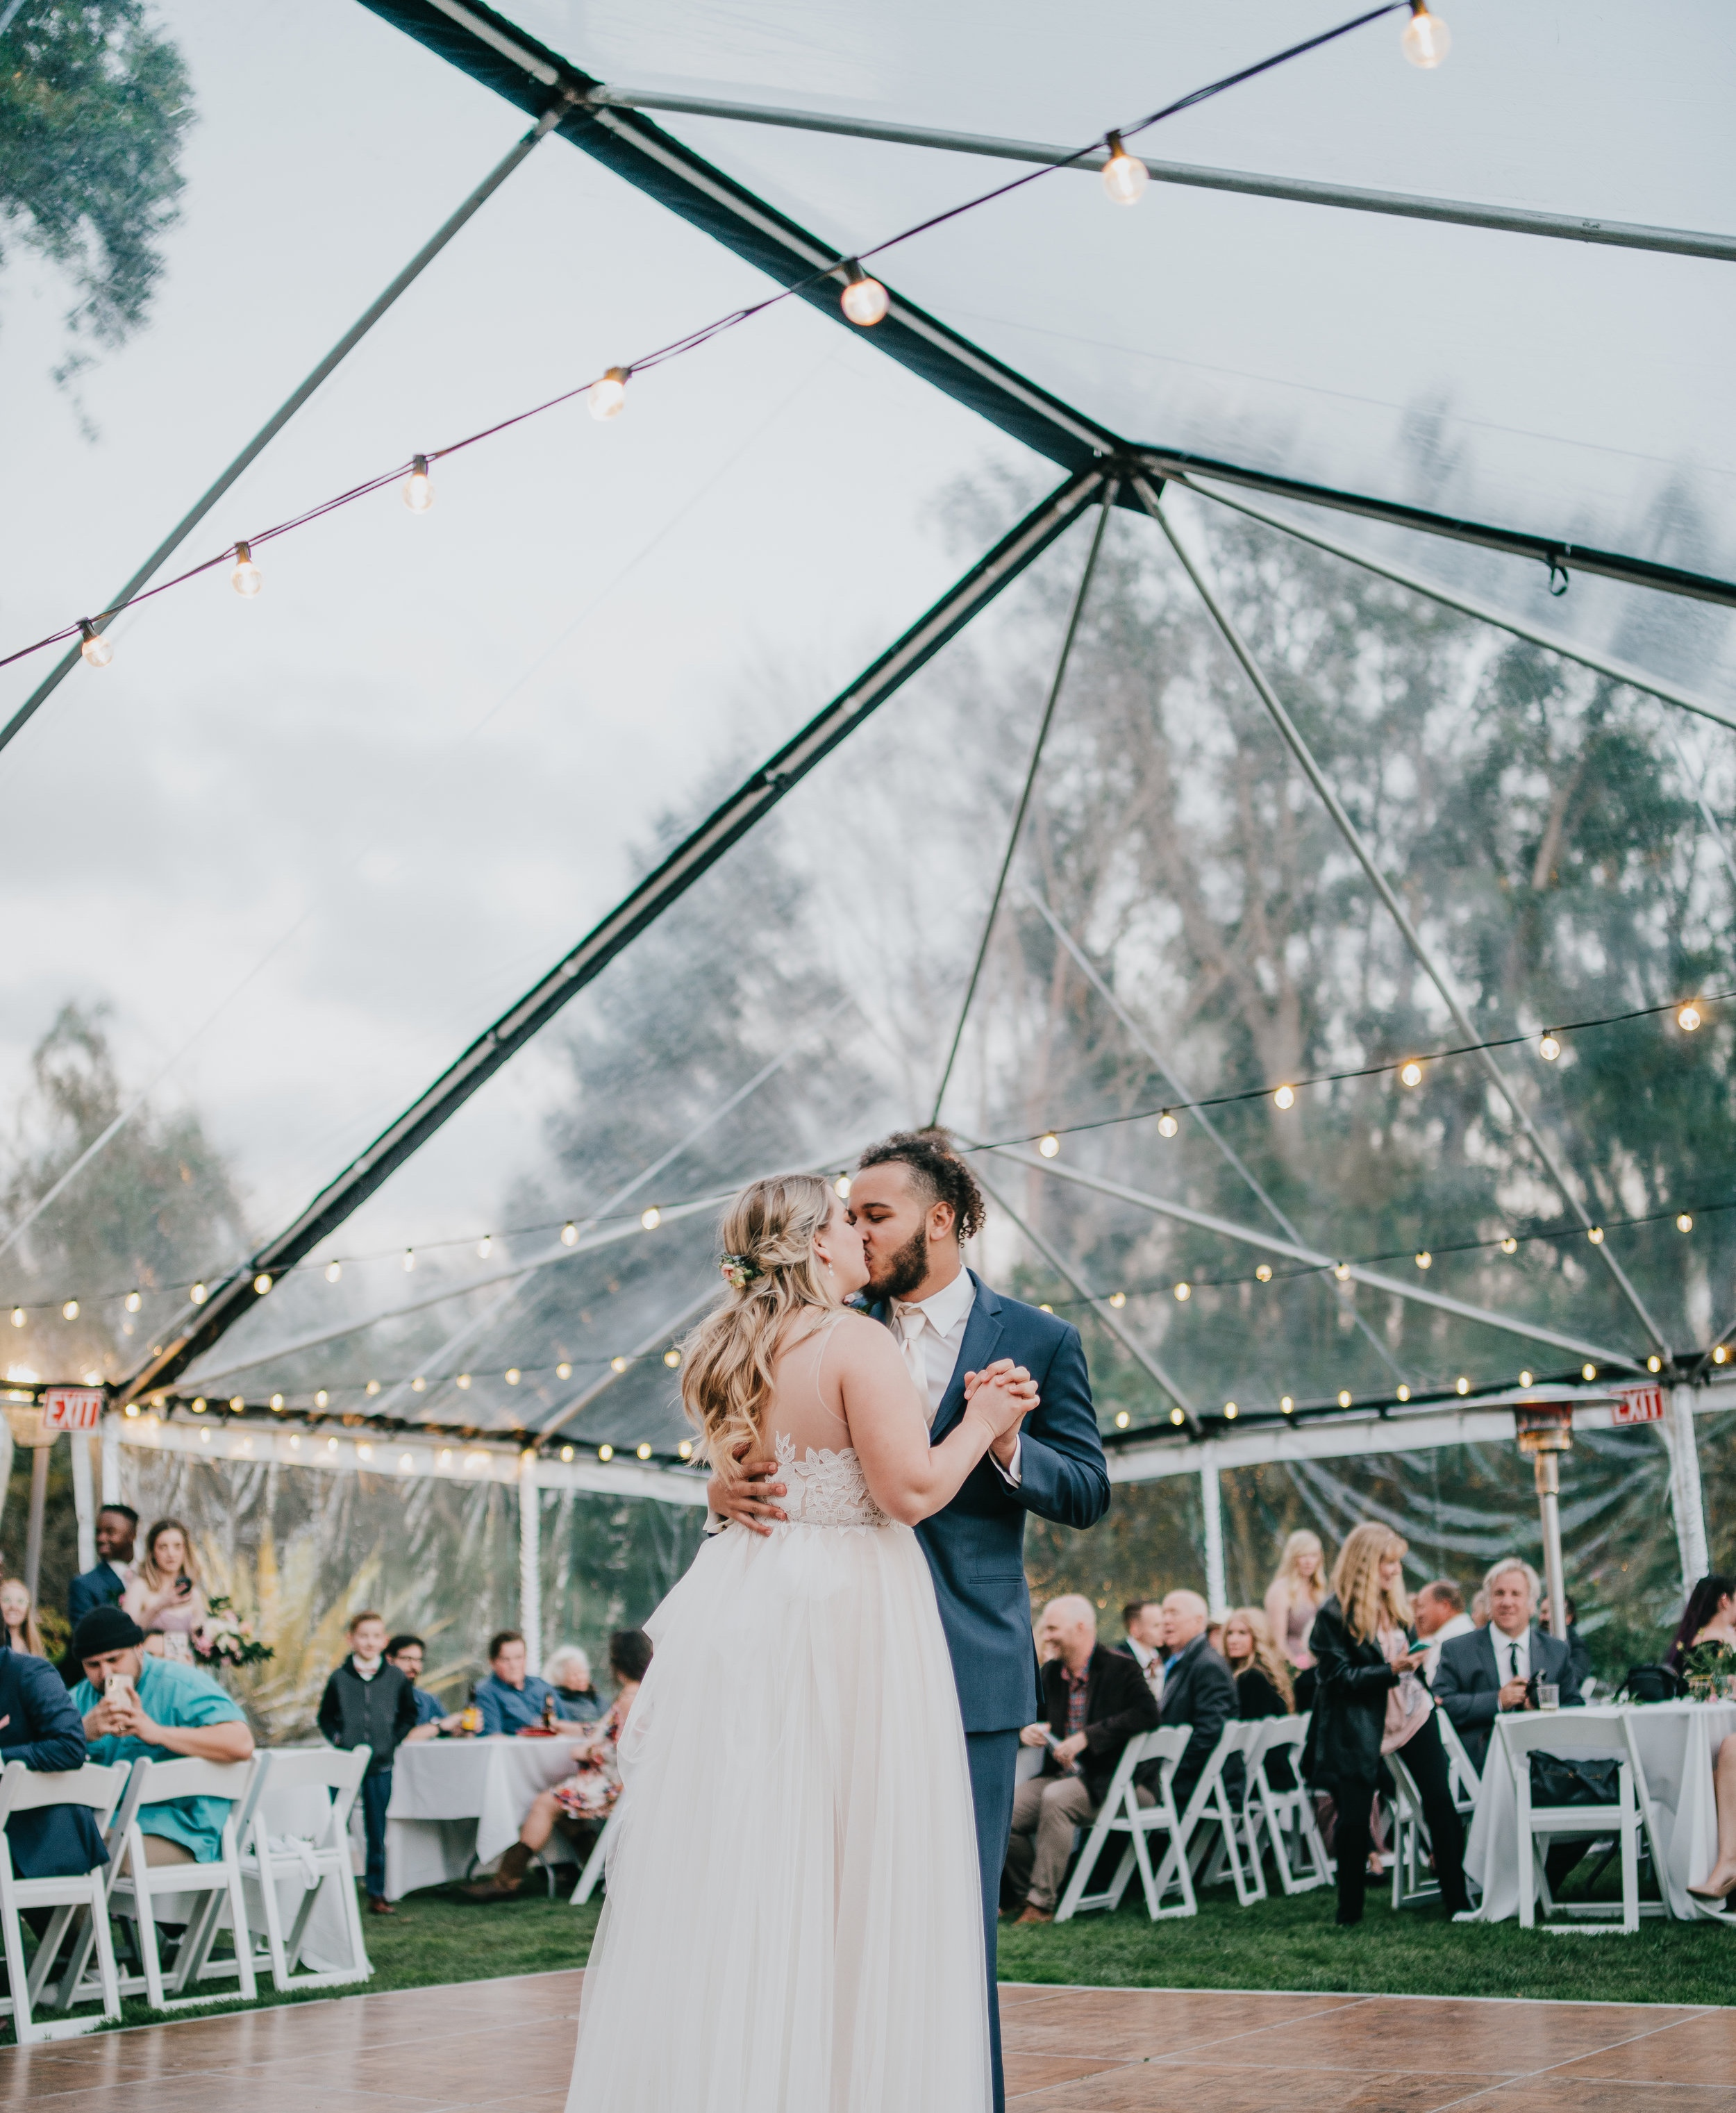 - You can get loads of incredible variations of festival wedding tents or tipis. The style is ultimately up to you, but it's perhaps best to shop around for the best fit first using your 'must-have' list and then look at aesthetics.